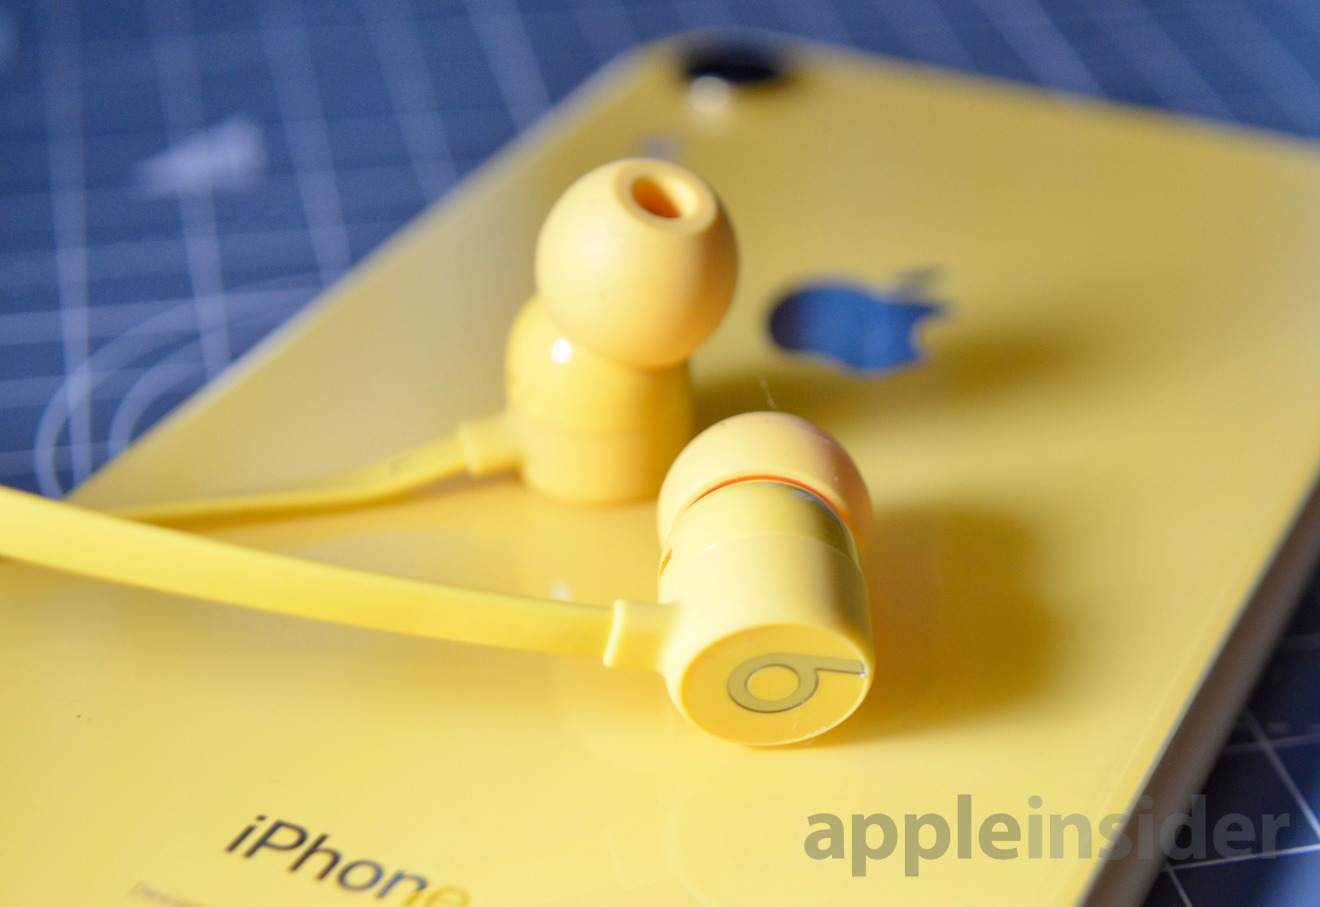 Apple earphones colors - iphone earphones wireless apple